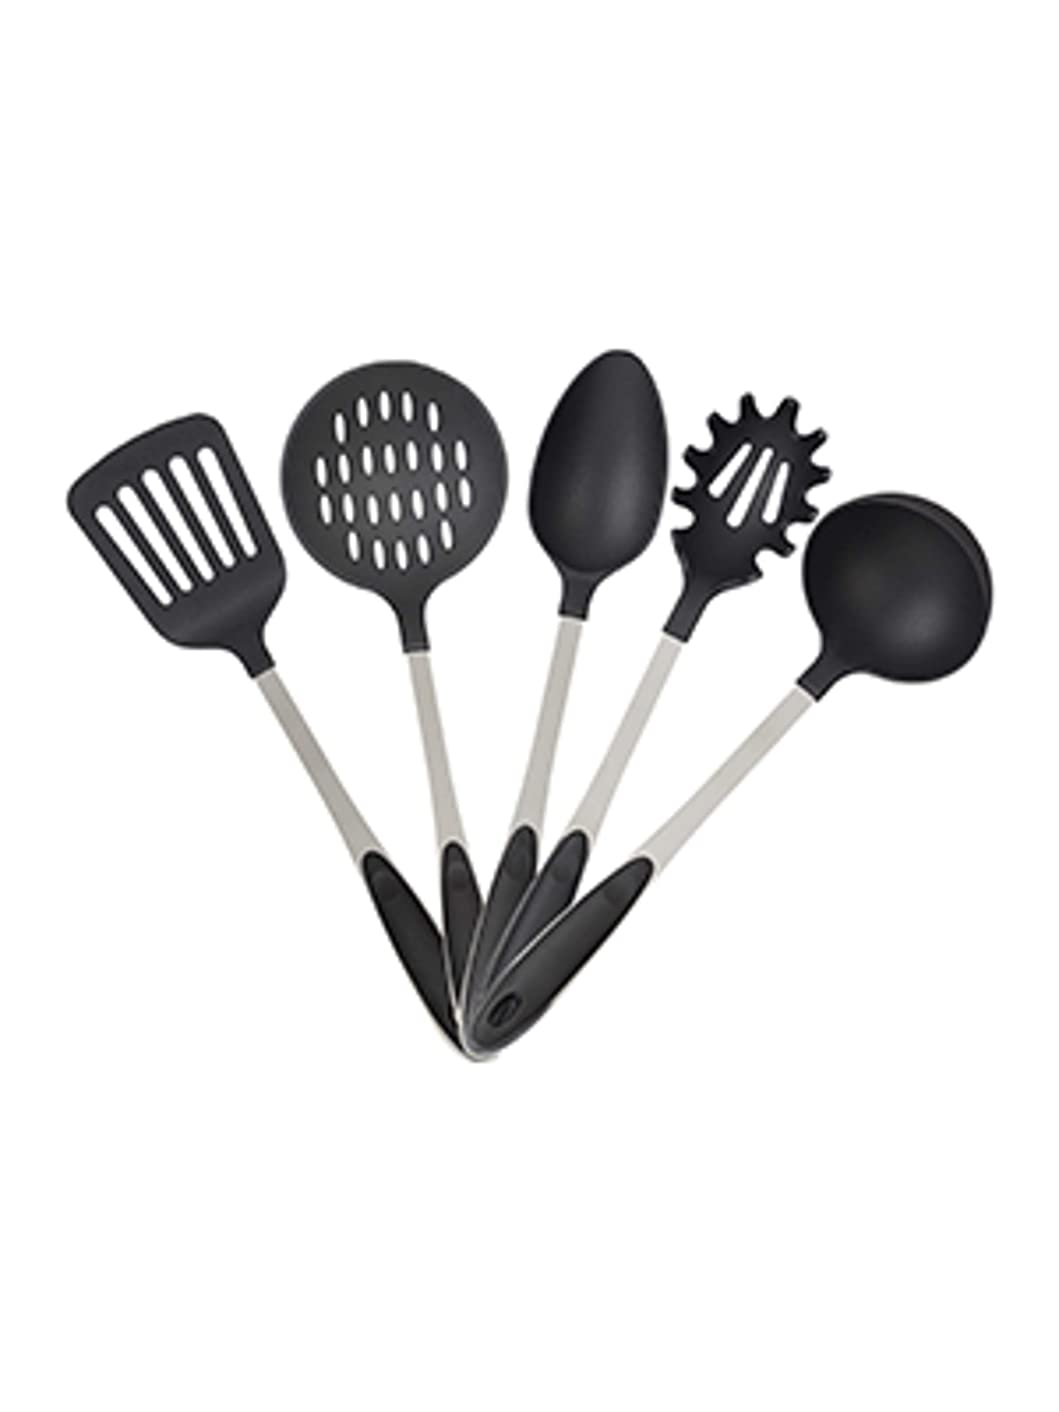 Relaxdays 5 Piece Set Ladle, Serving Spoon, Pasta Spoon, Turner, Slotted Spoon, Stainless Steel, Silver/Black, Standard